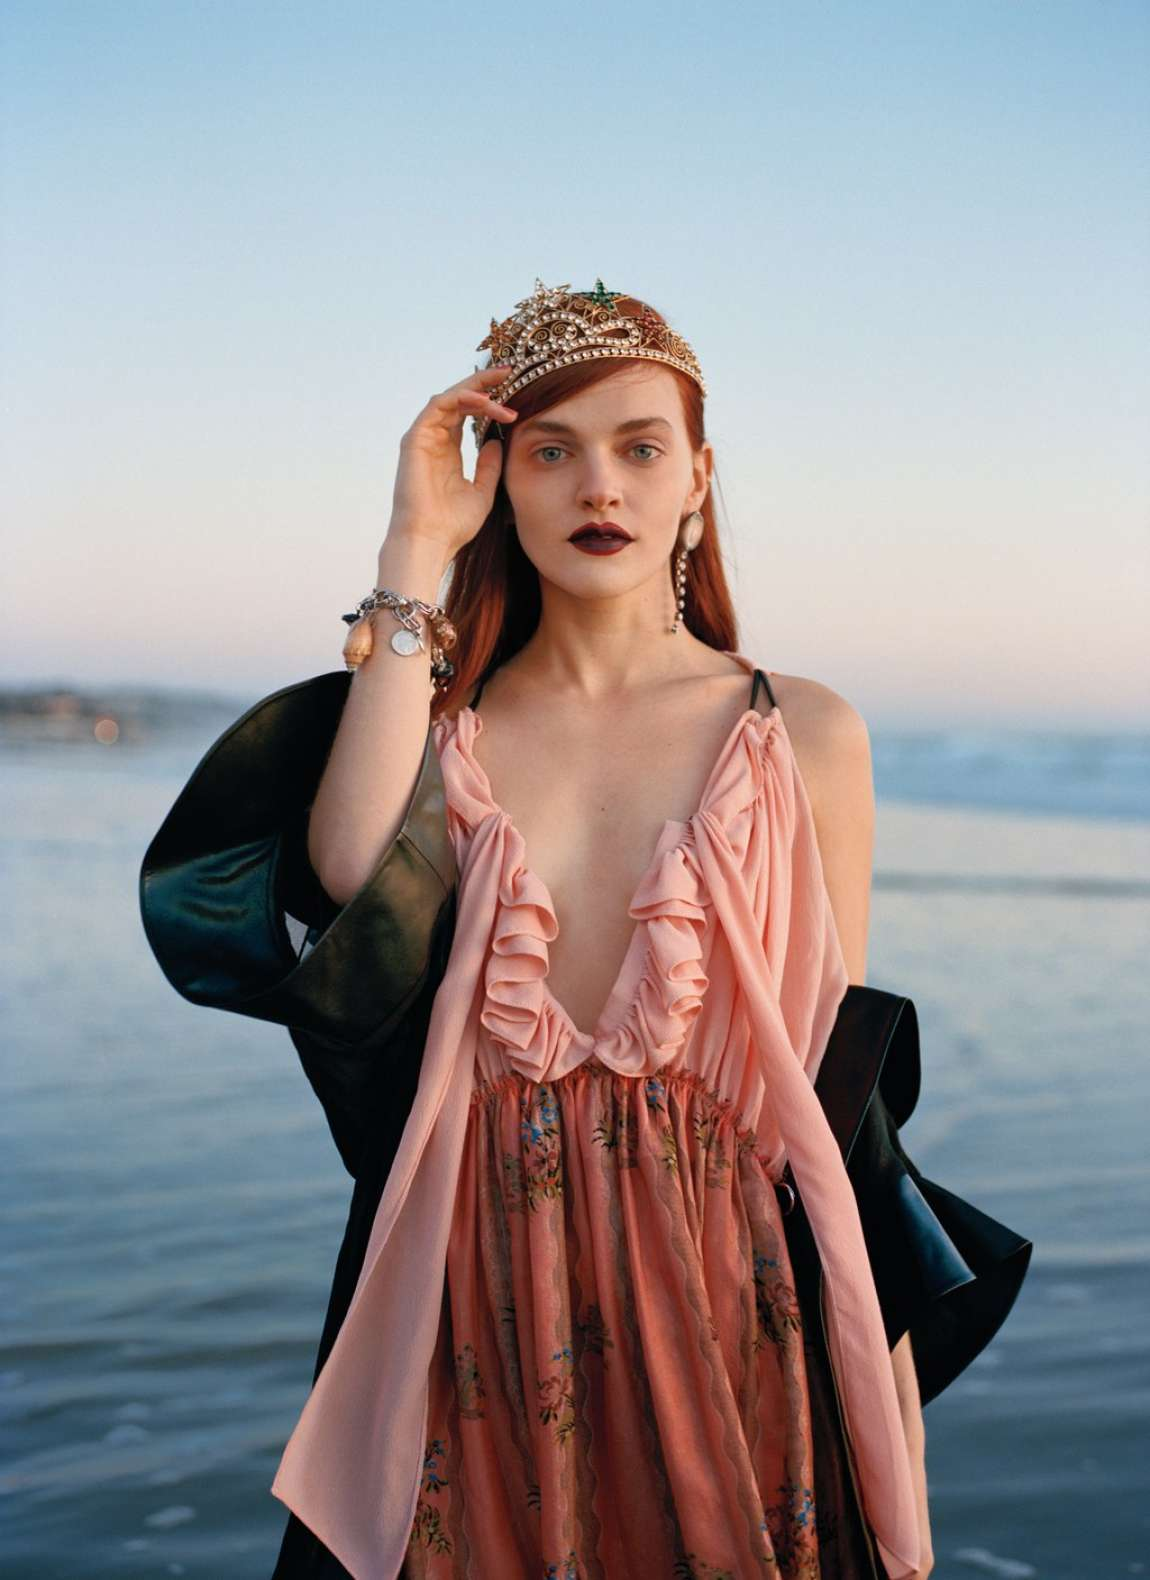 Madeline Brewer by Daria Kobayashi Ritch for Glamour Magazine (March 2018)